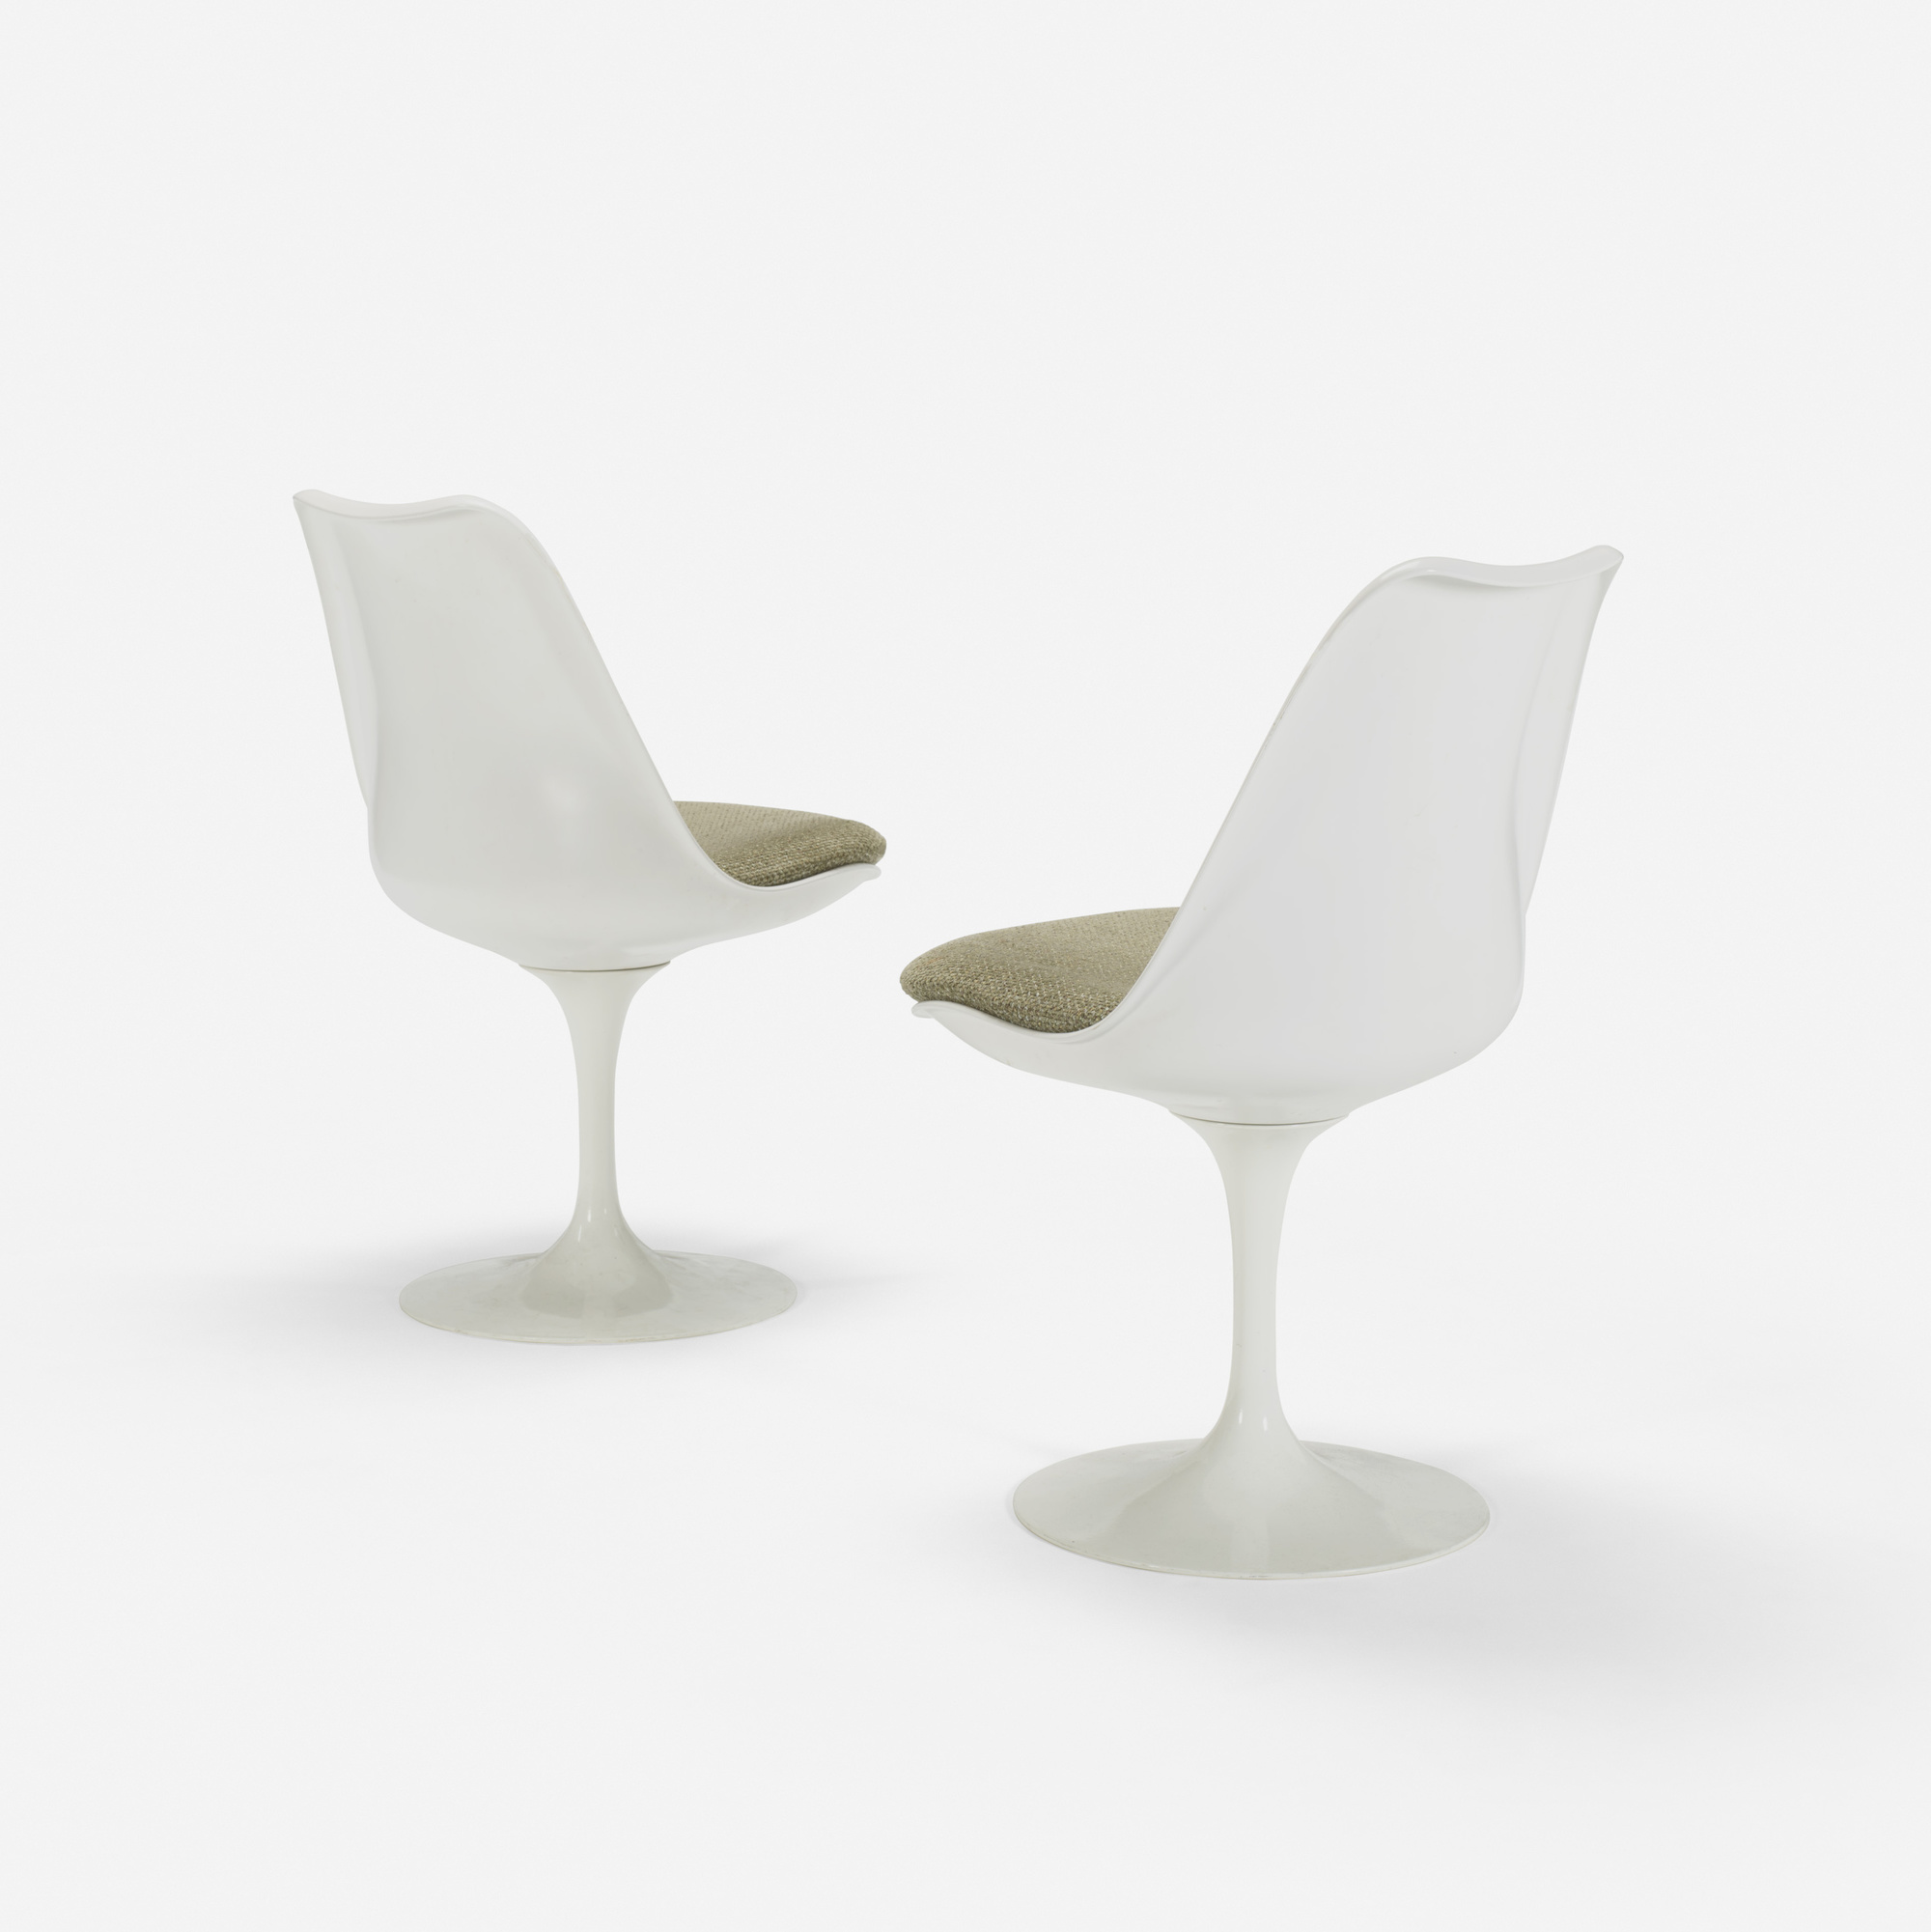 104: Eero Saarinen / Tulip chairs from the Ladies' Lounge, pair (1 of 1)